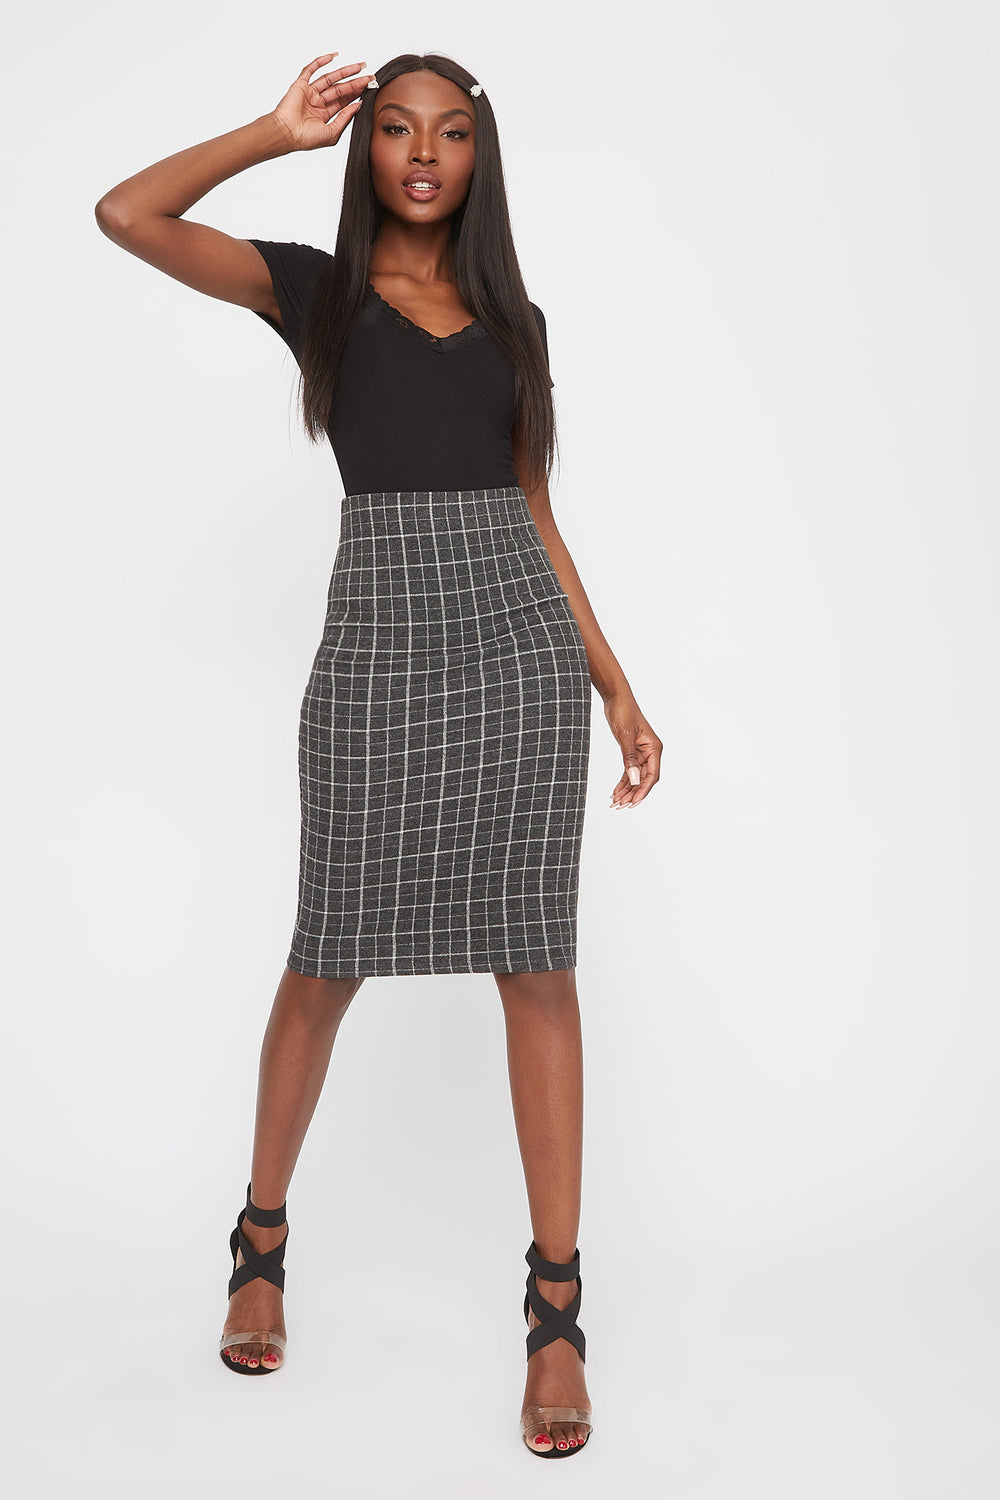 Patterned Midi Skirt Black With White